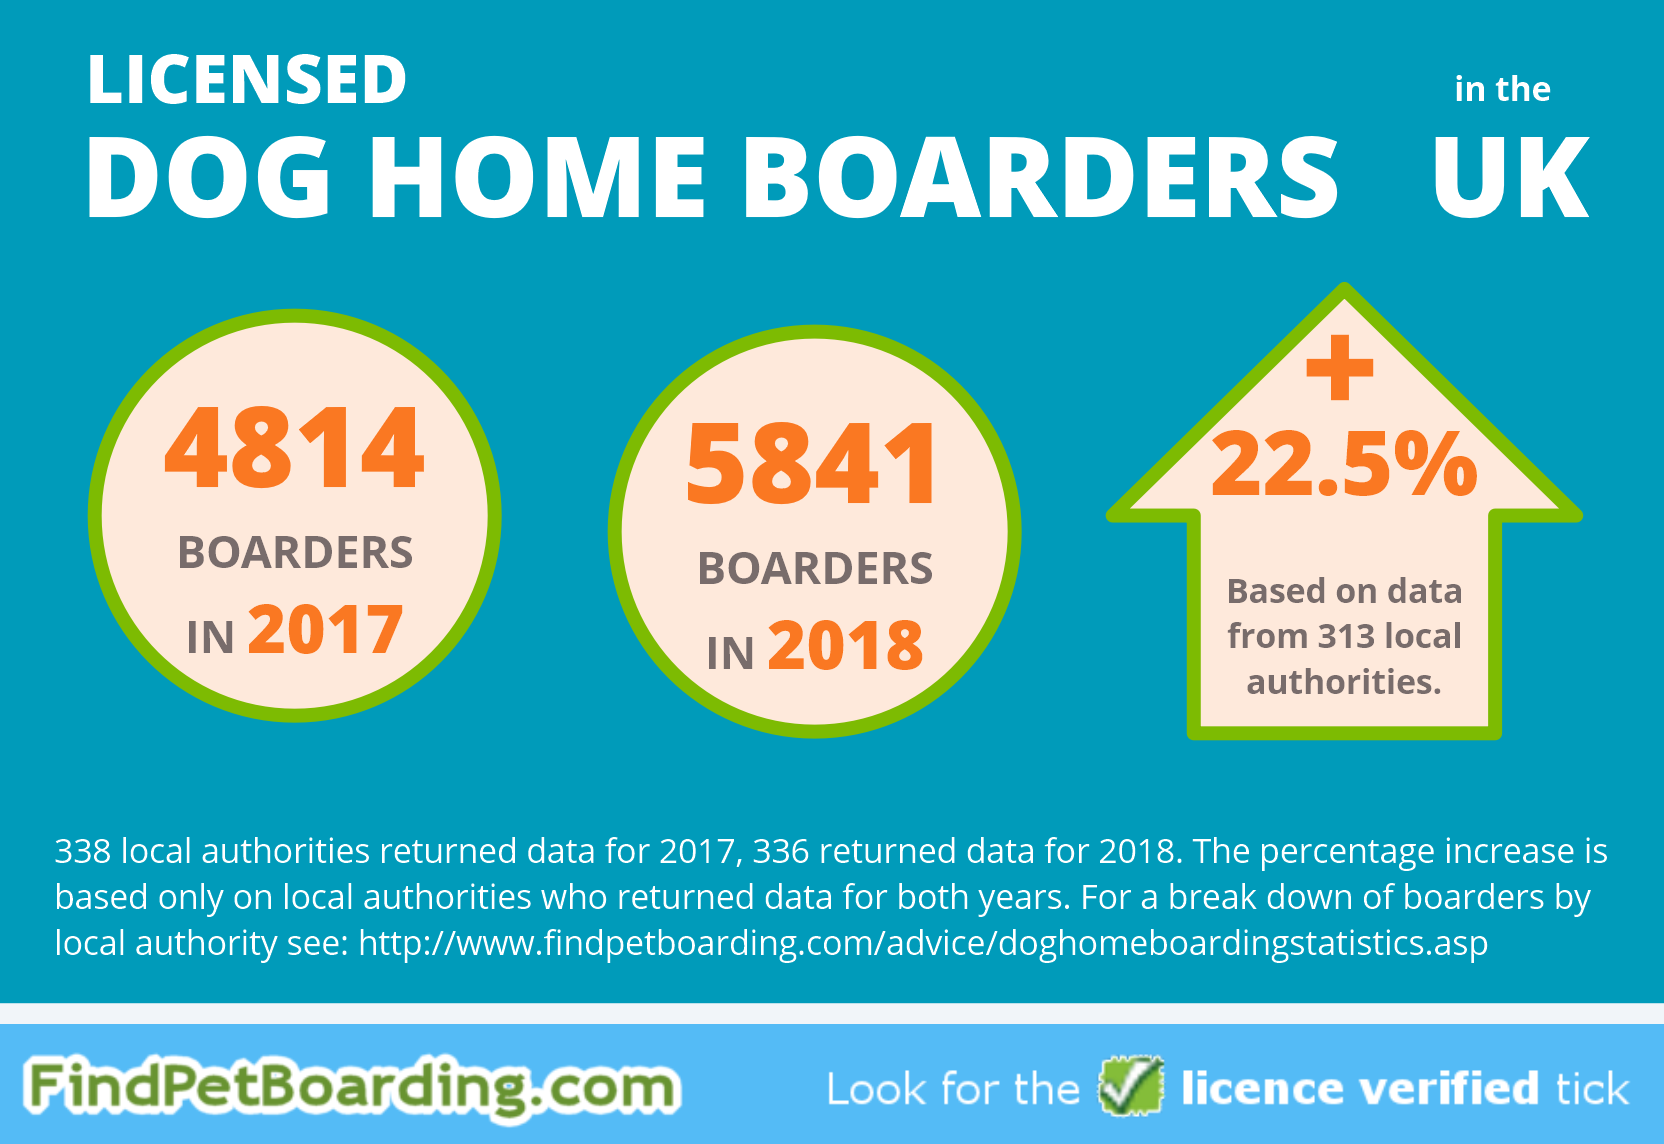 Number of dog home boarders in the UK